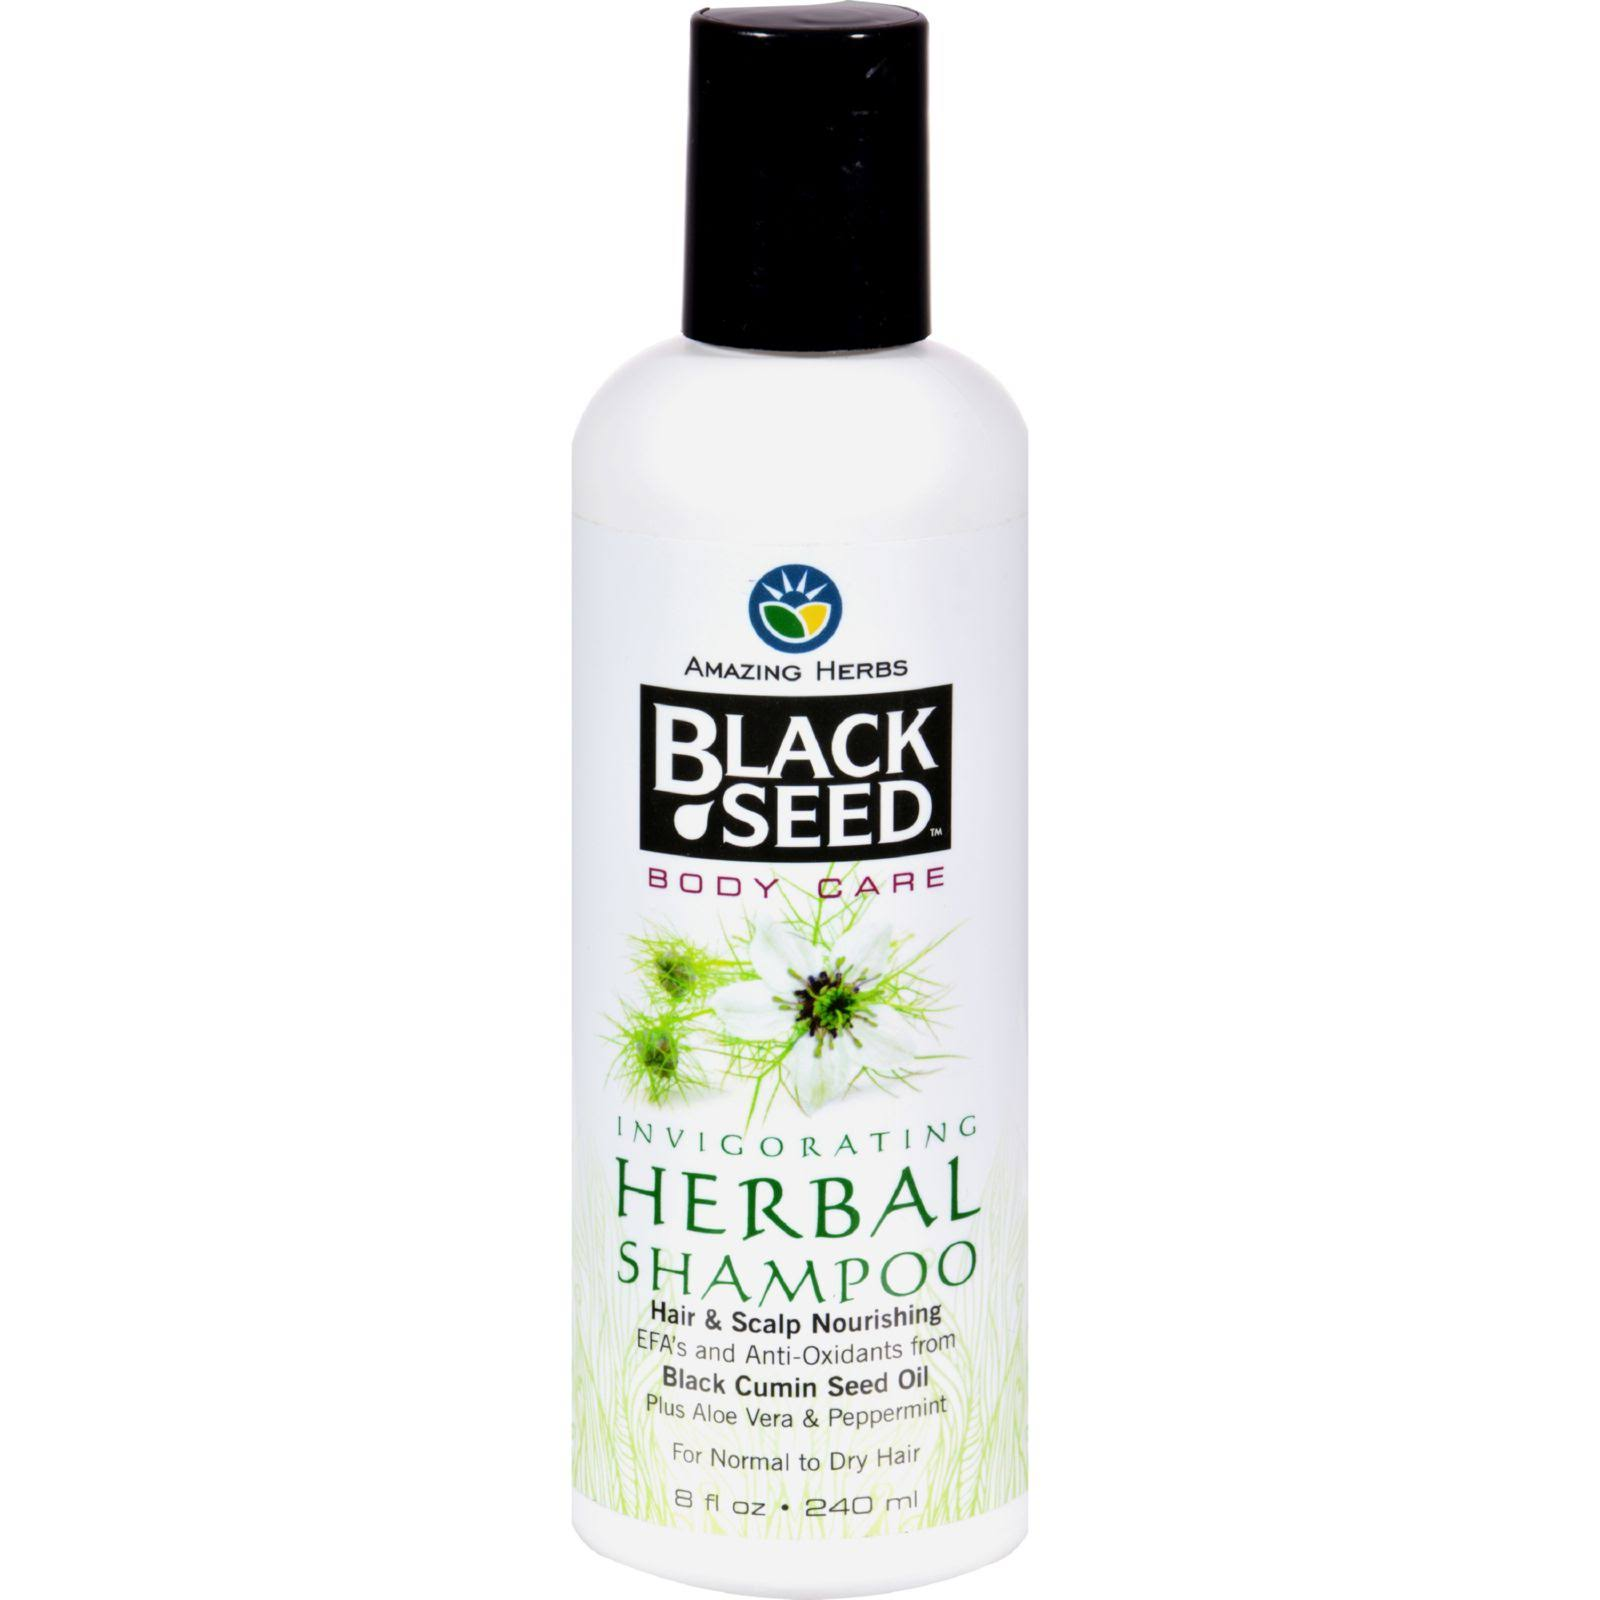 Amazing Herbs Black Seed Herbal Shampoo - 240ml